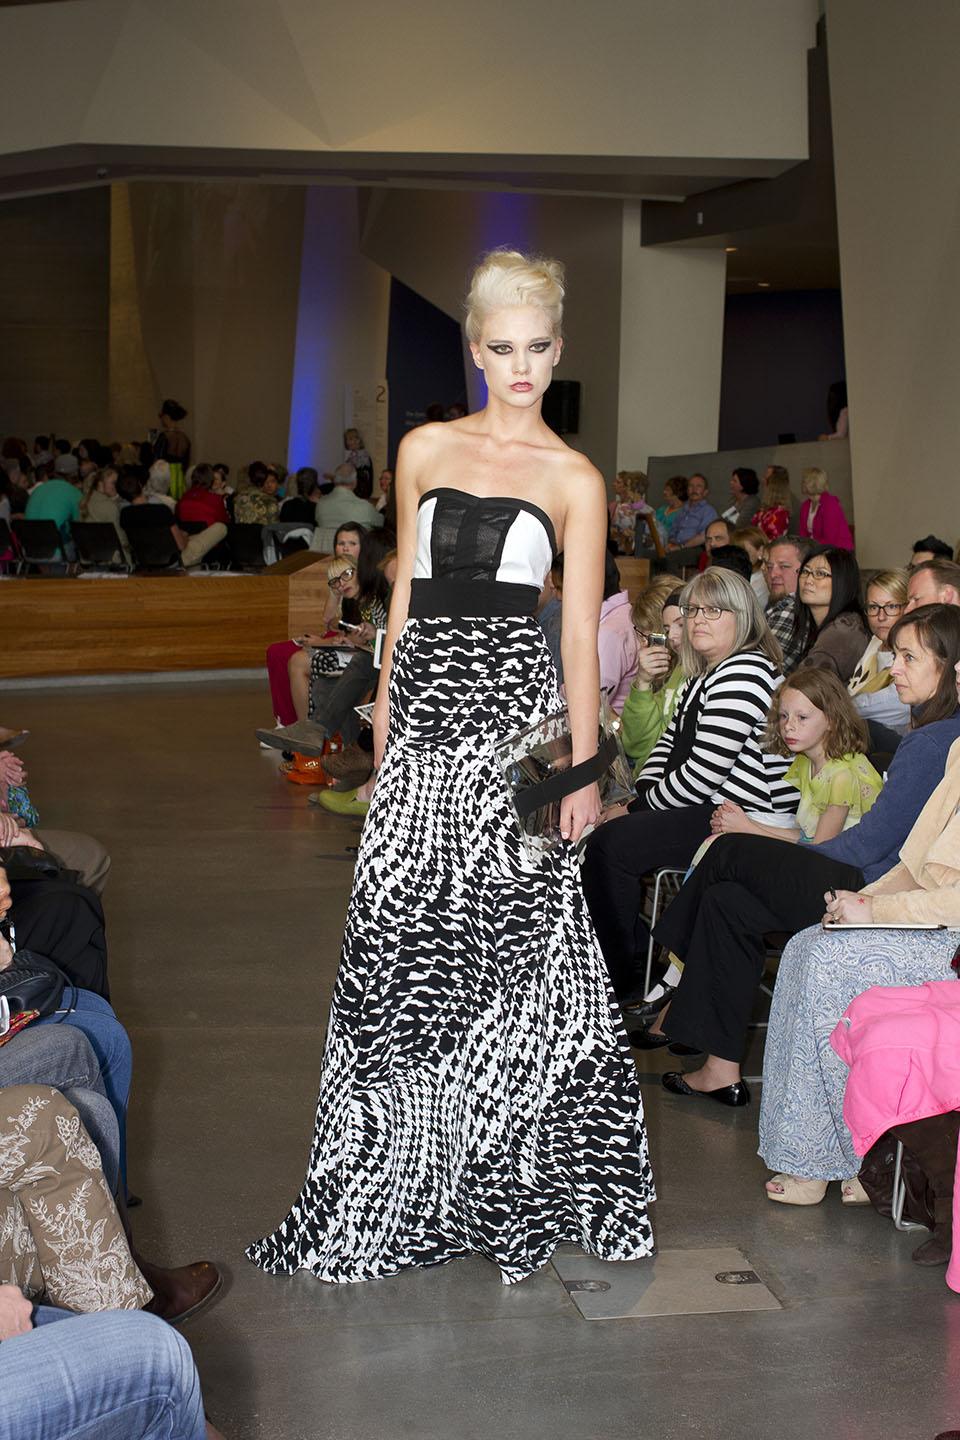 Slcc Fashion Institute Holds Native American Inspired Raw Couture Fashion Show